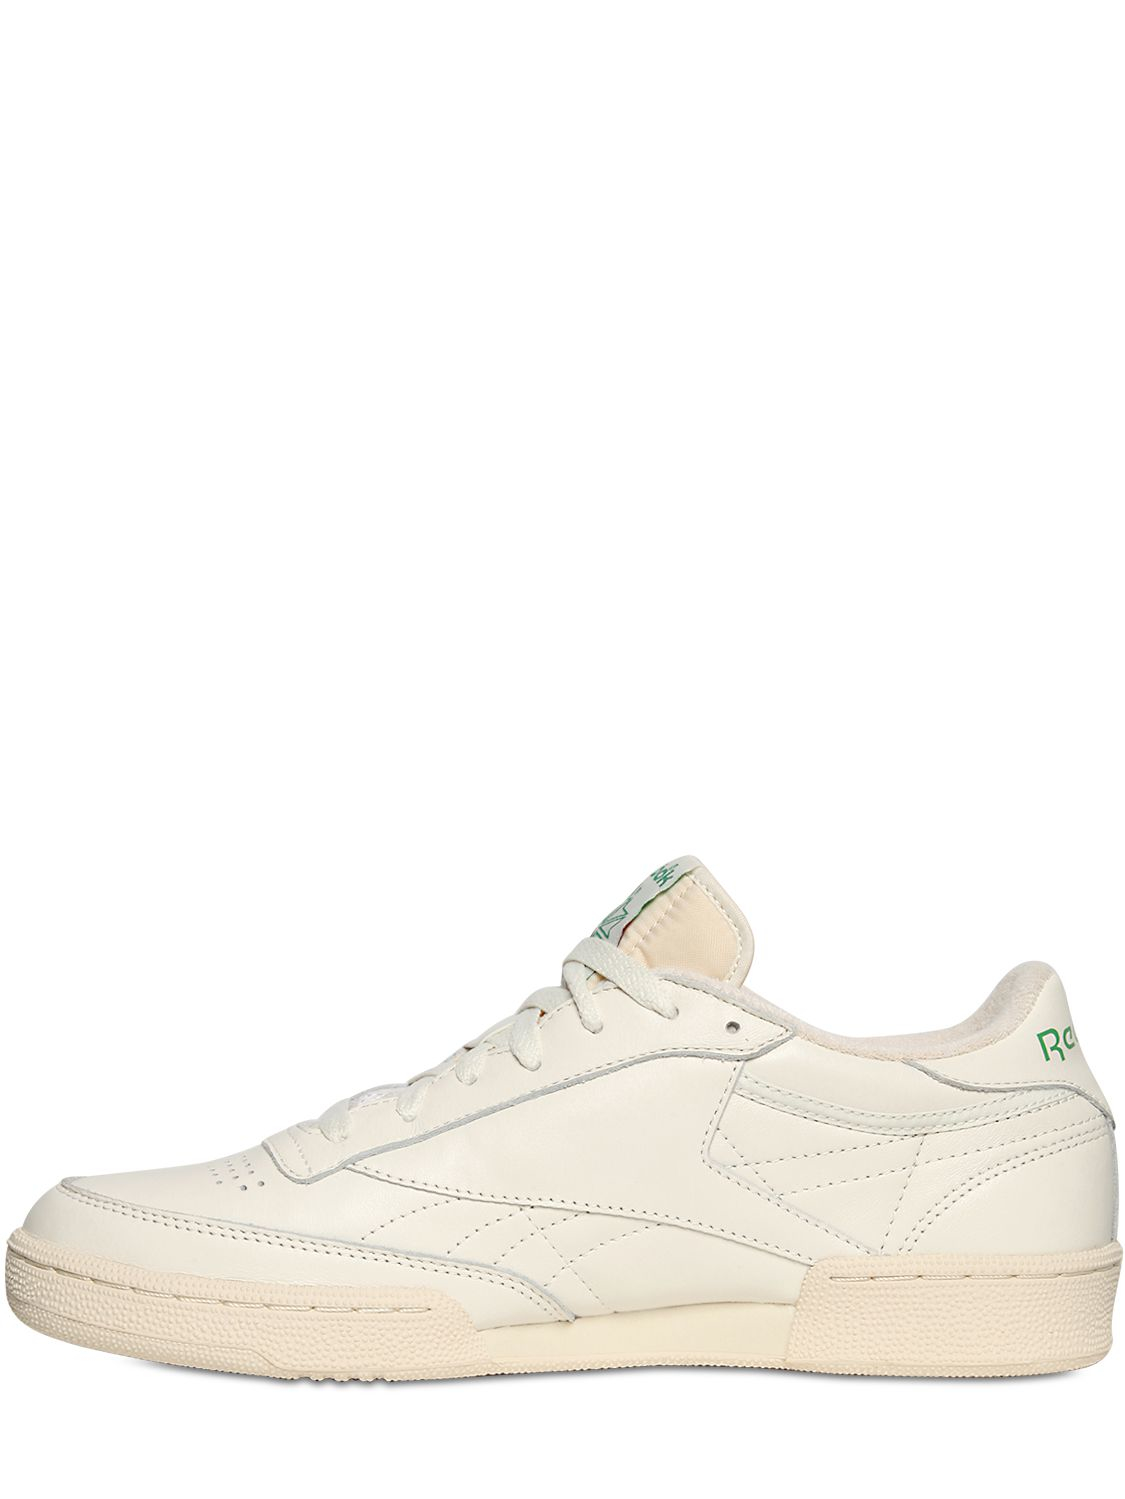 Lyst - Reebok Club C 85 Vintage Leather Low-Top Sneakers in White ... d0c8f1f00